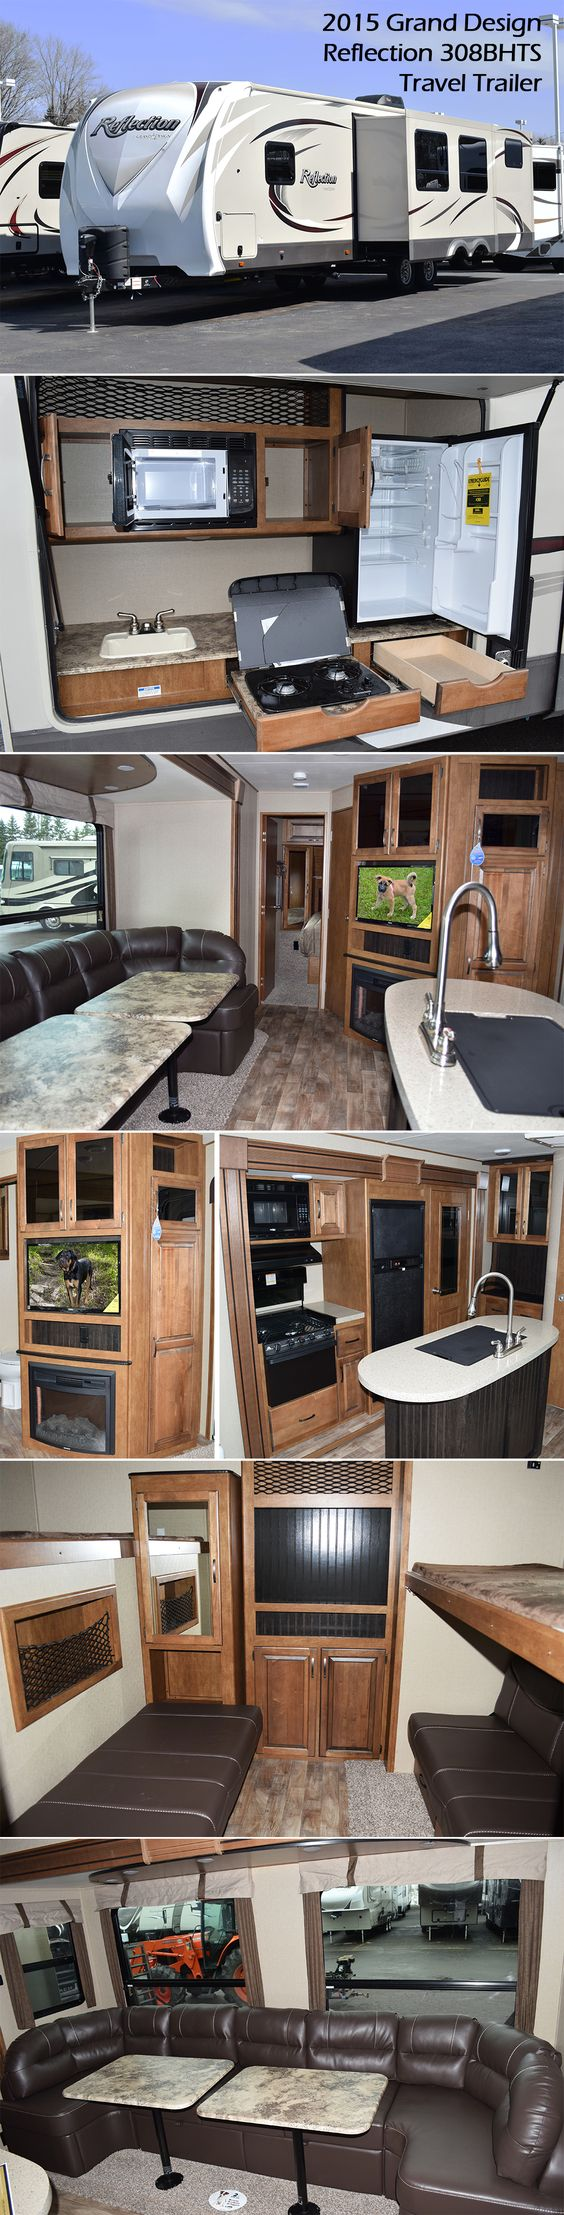 travel trailers luxury travel trailers style grand designs